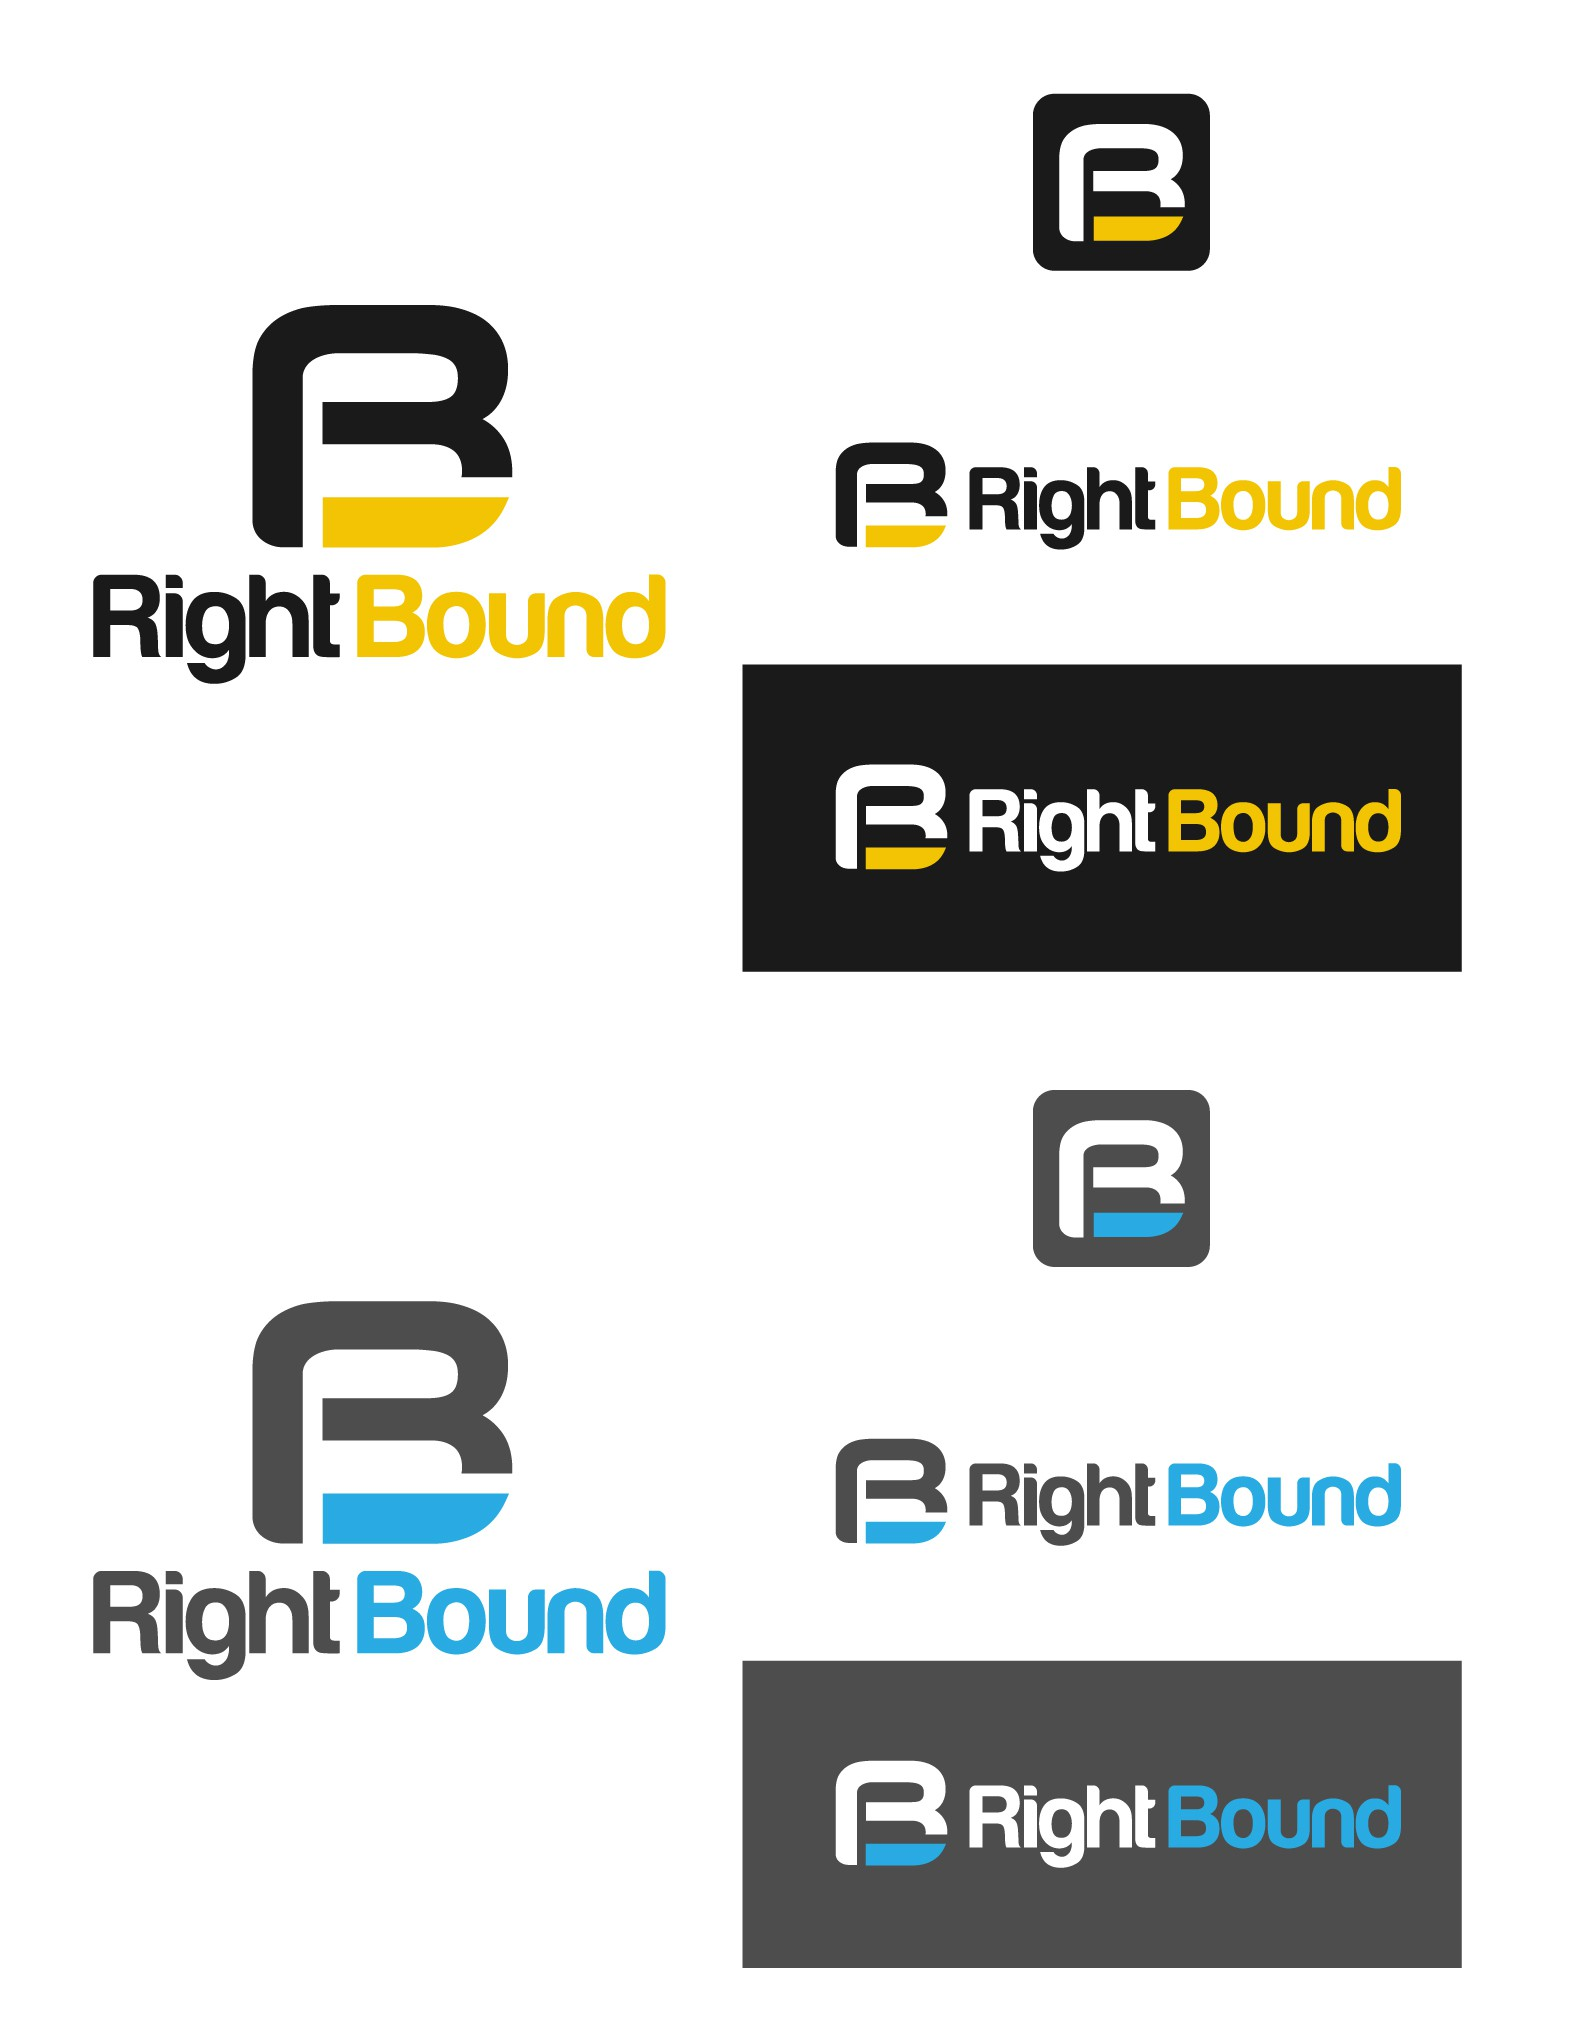 Right Bound has an awesome logo...just not yet. You get to design it.